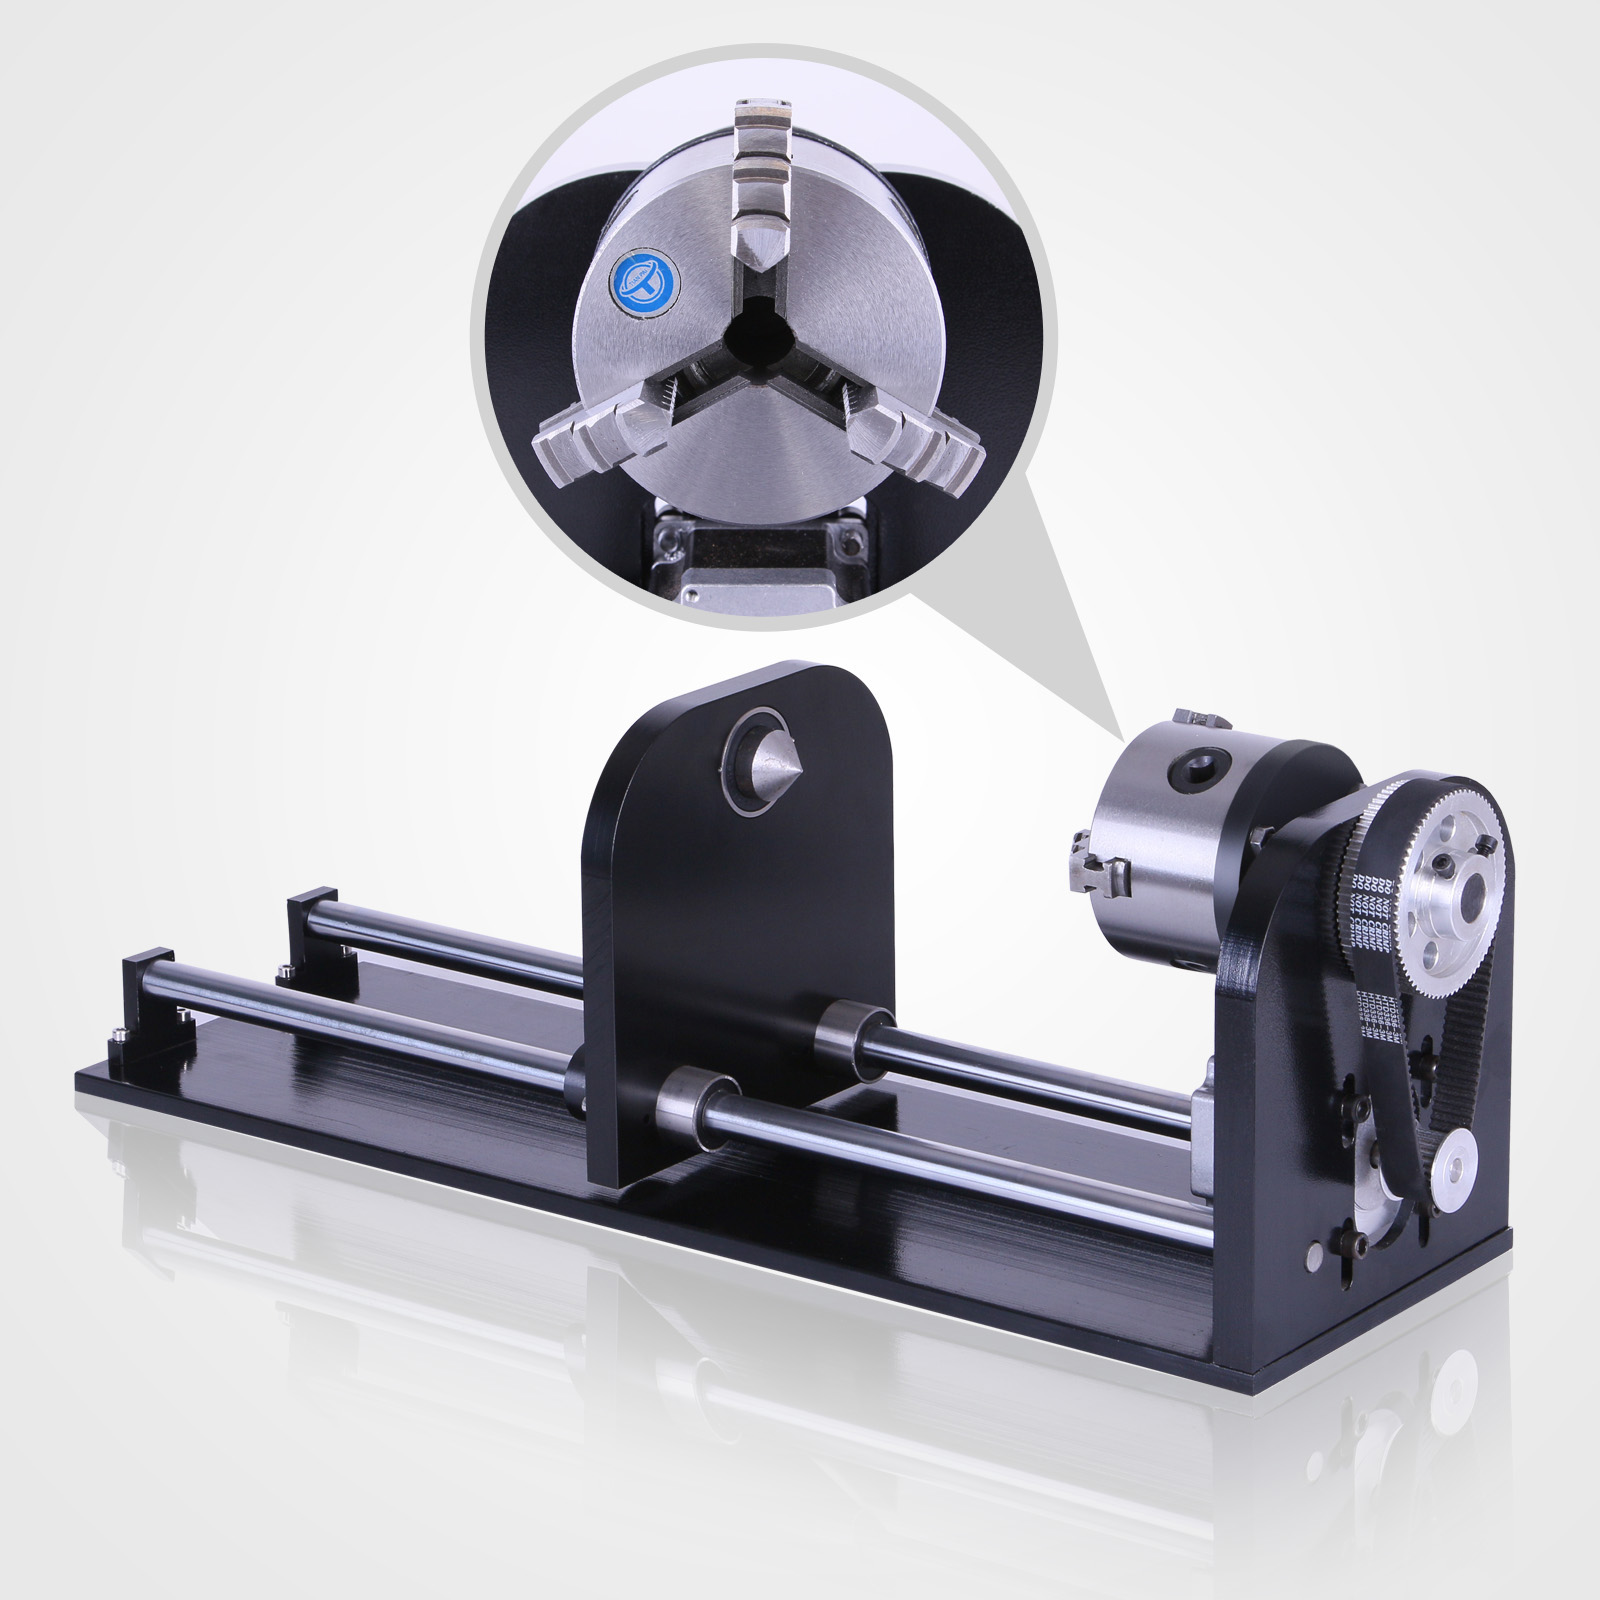 CO2-Usb-Laser-Engraving-Cutting-Machine-Engraver-Cutter-Air-Assist-Carving thumbnail 84